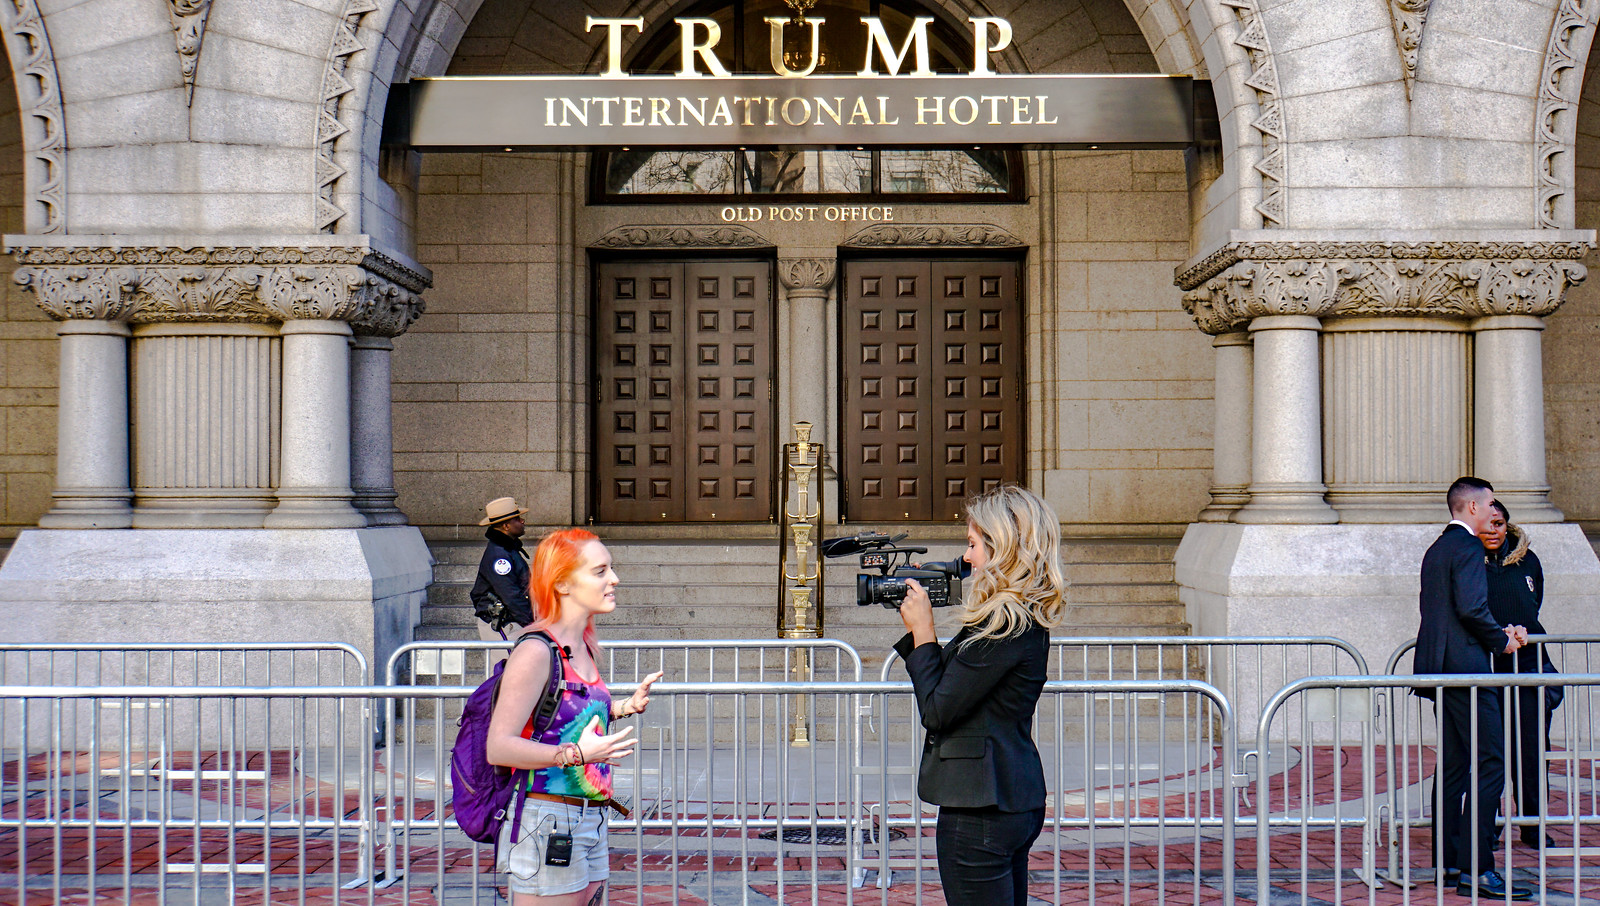 2017.02.19 Lgbtqi+ Makeout at Trump Hotel, Washington, DC USA 01008